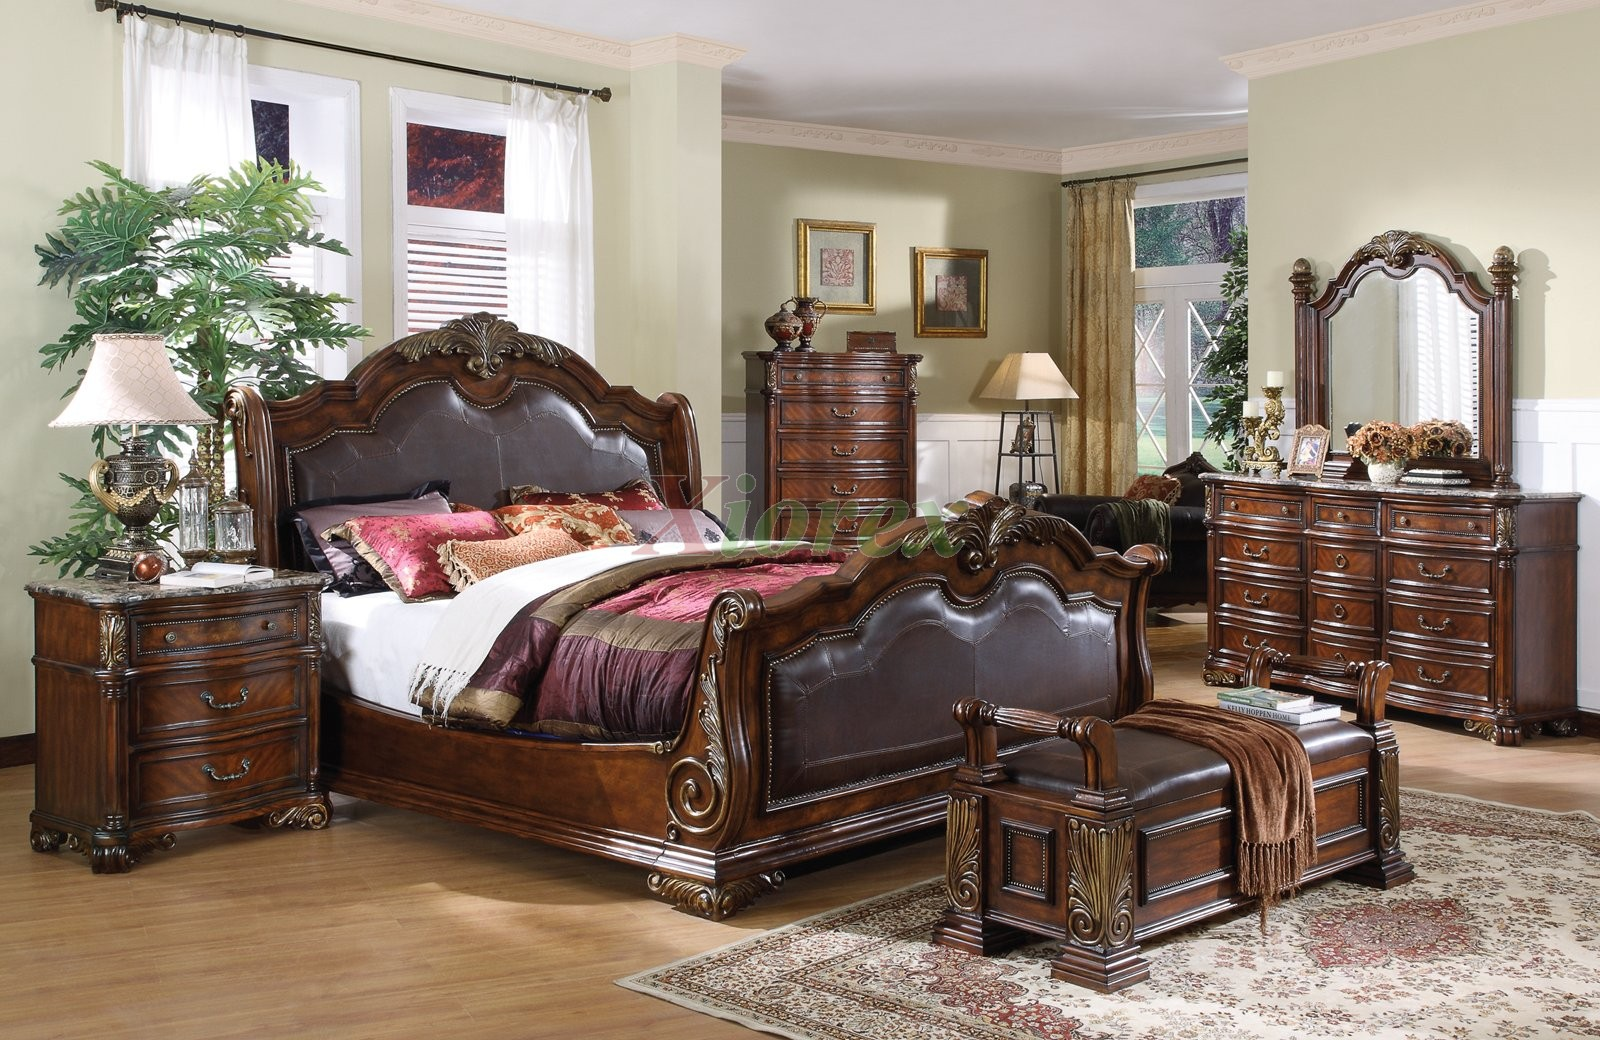 Sleigh Bedroom Set With Leather Headboard And Footboard Beds Xiorex